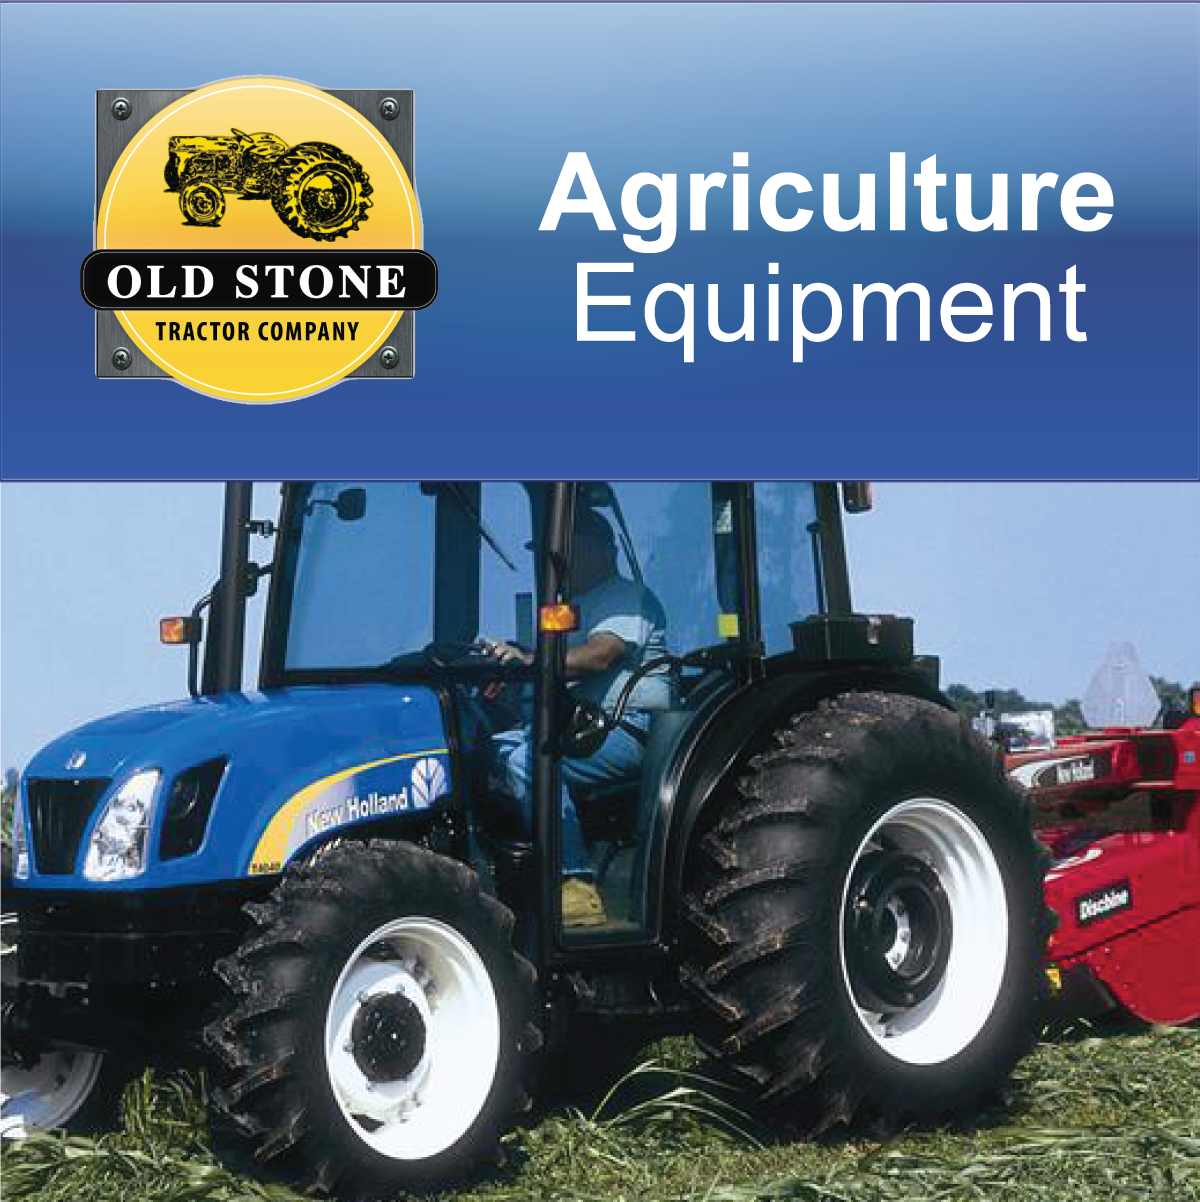 CLICK ON BLOCK TO GO TO AGRICULTURE EQUIPMENT